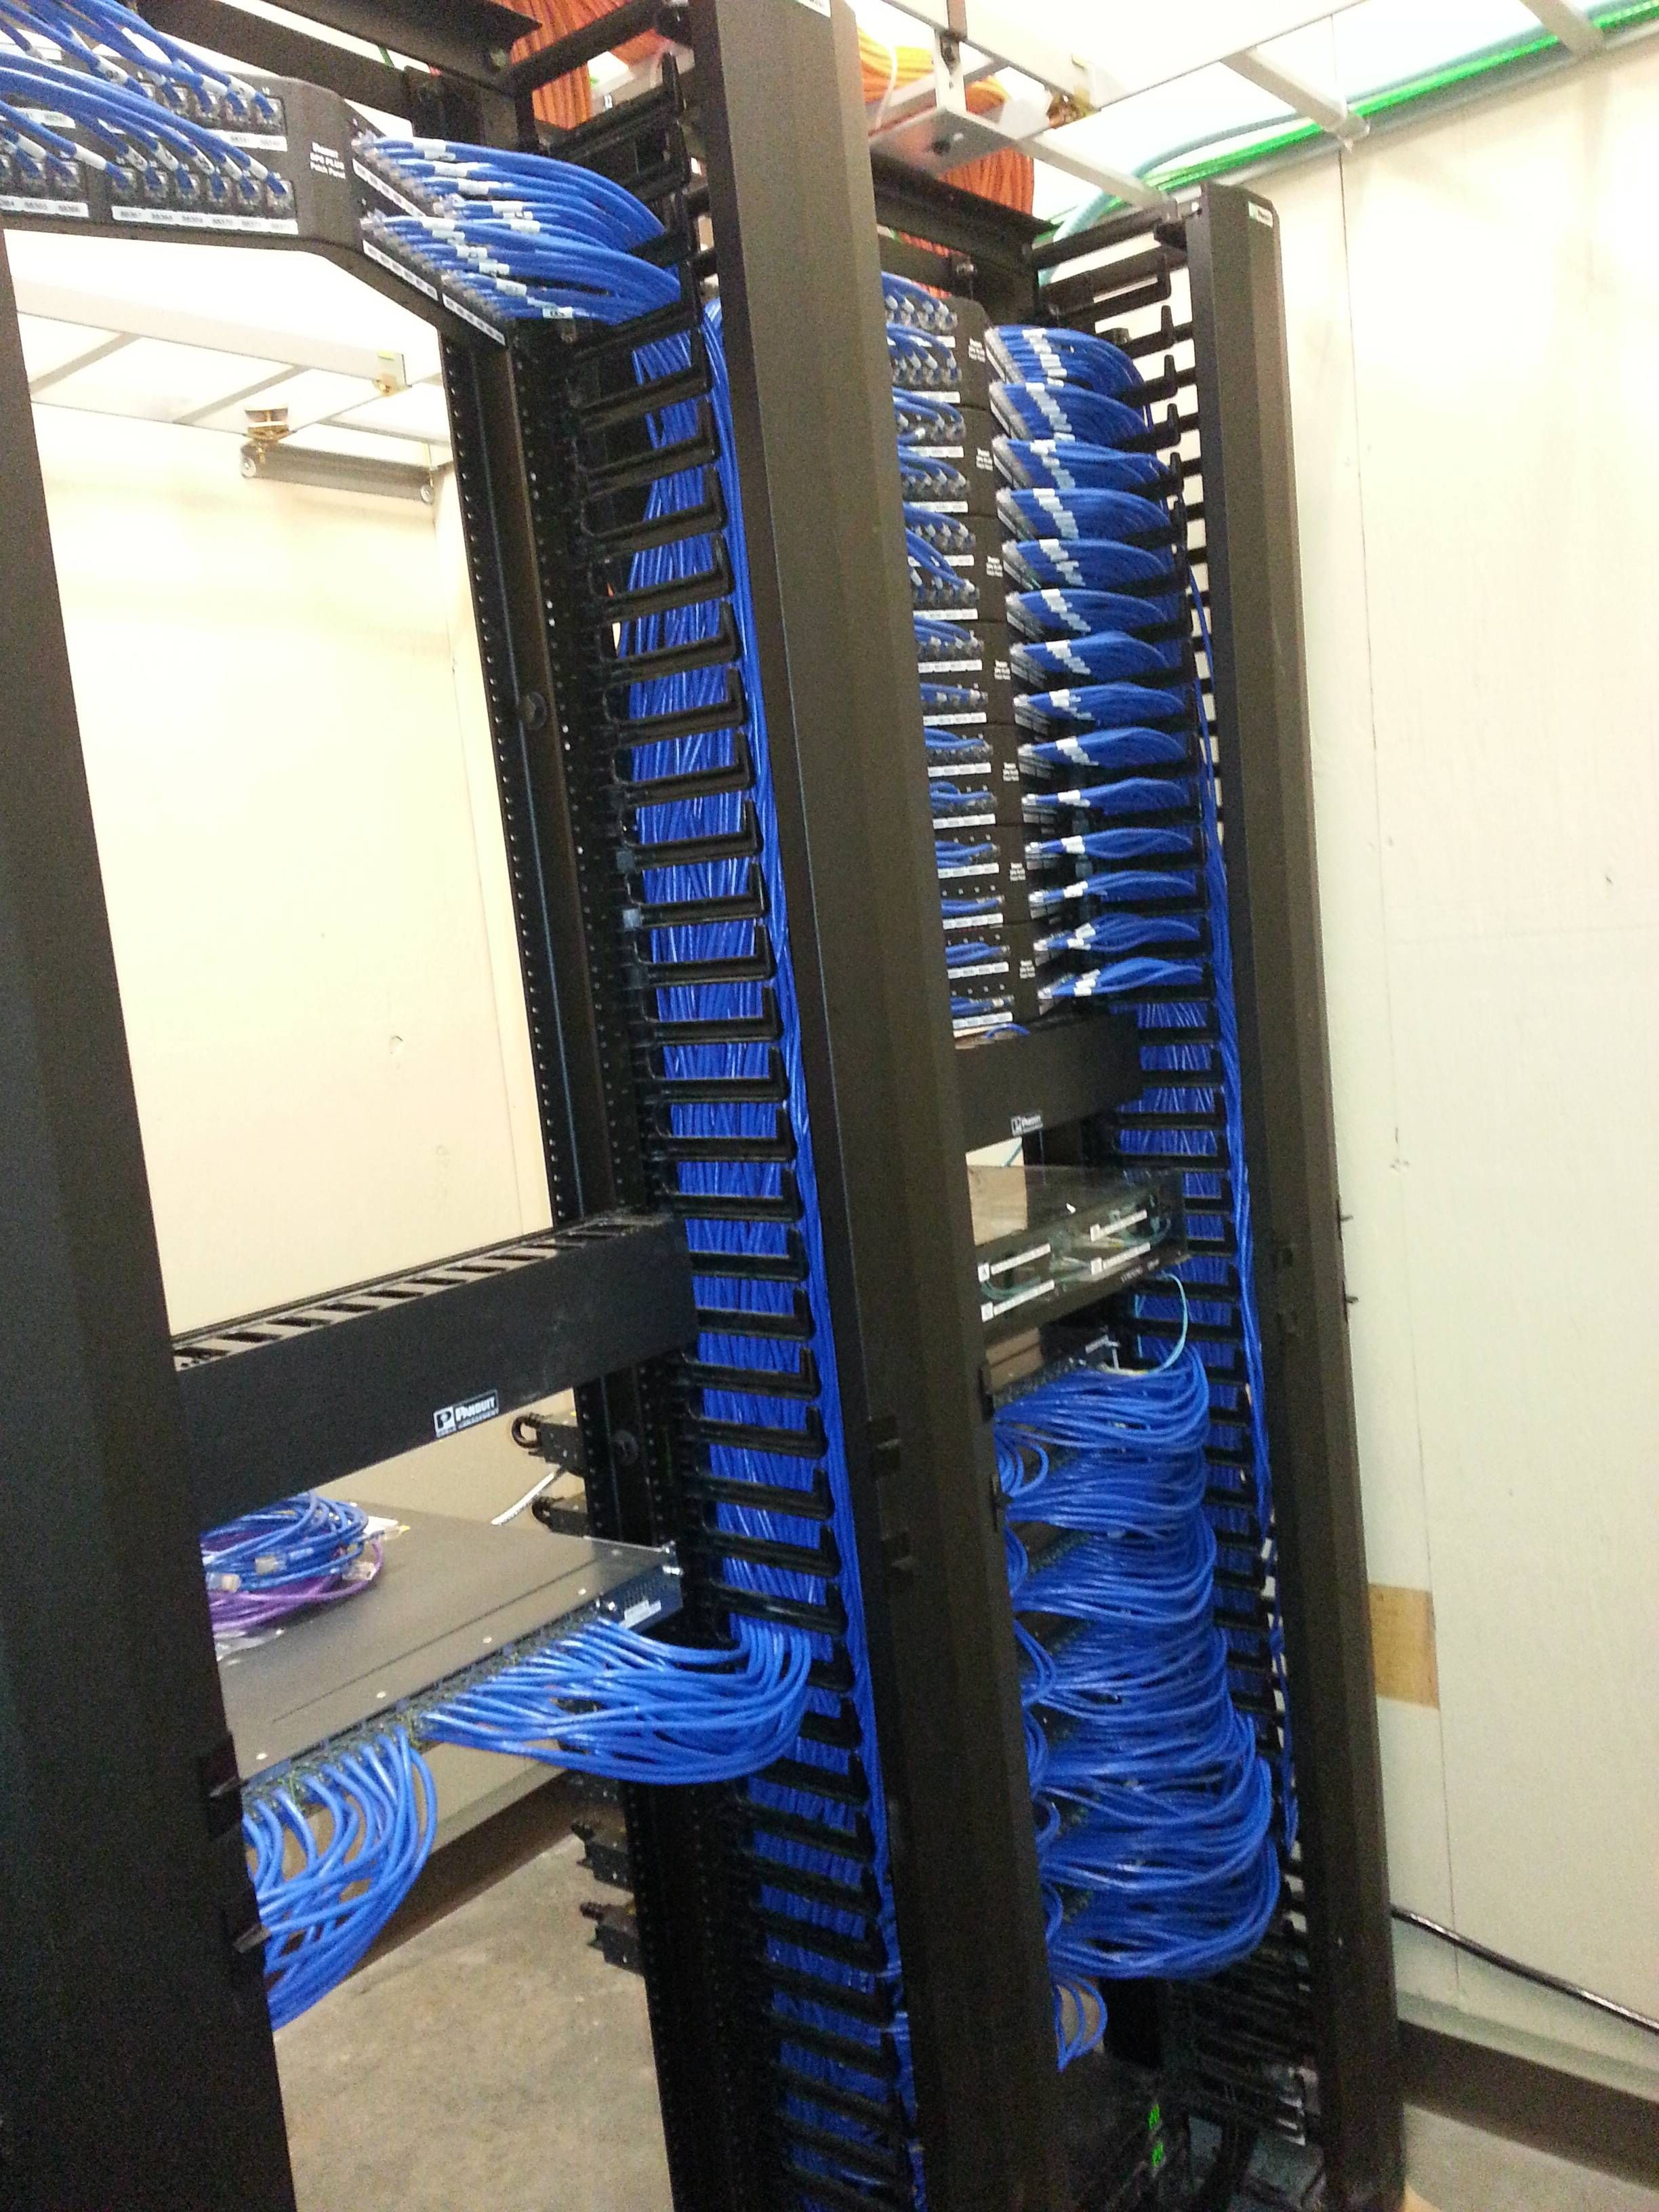 medium resolution of blue ethernet cables and patch panels galore looks neat and tidy